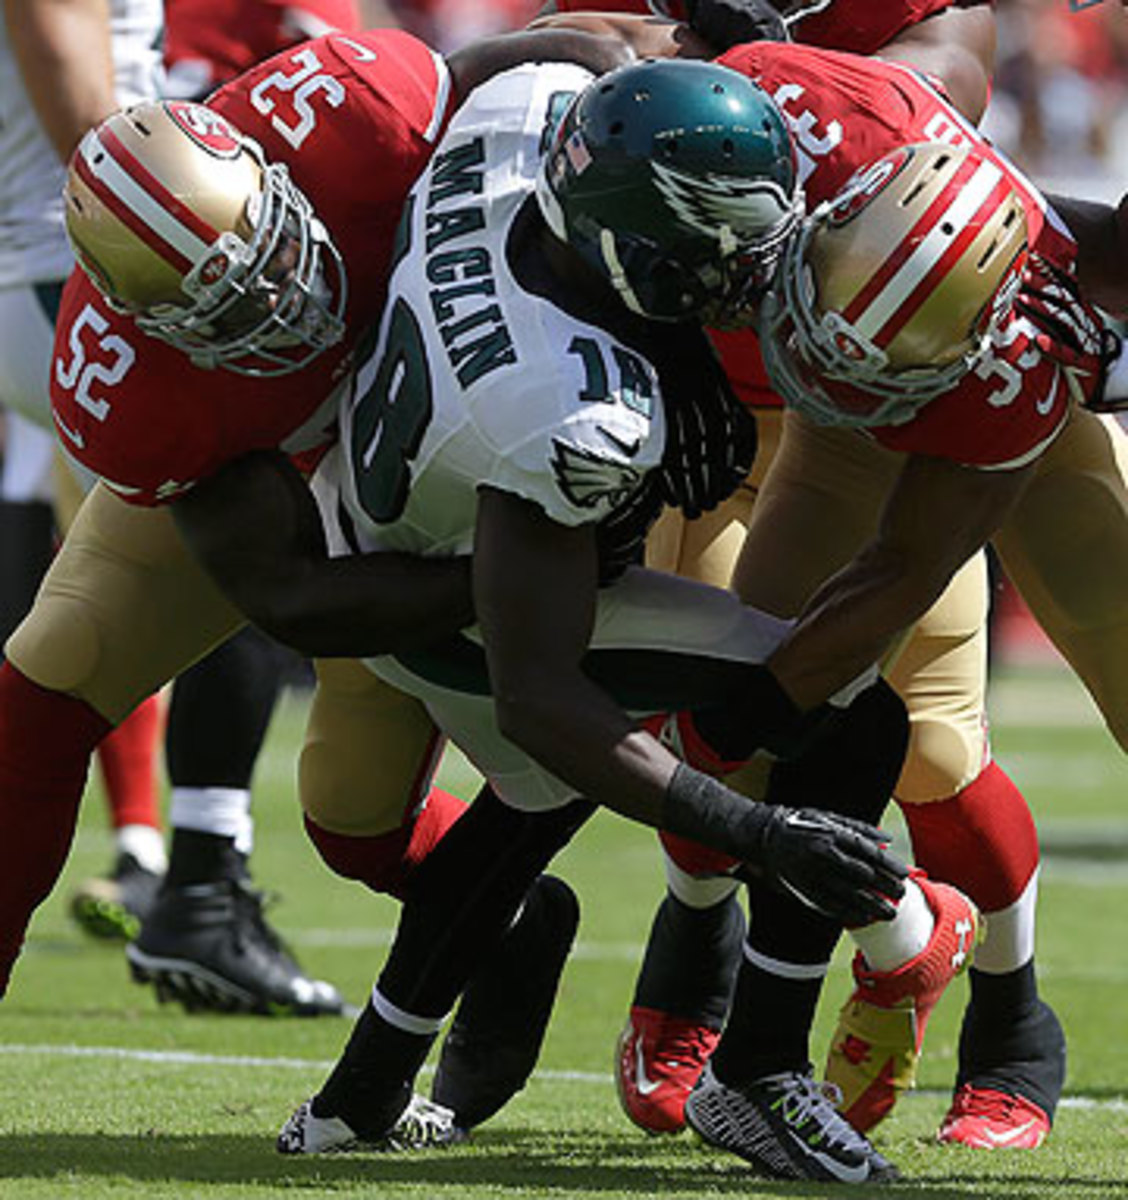 The 49ers defense dominated the Eagles, not allowing Philly to cross midfield until the fourth quarter. (Marcio Jose Sanchez/AP)